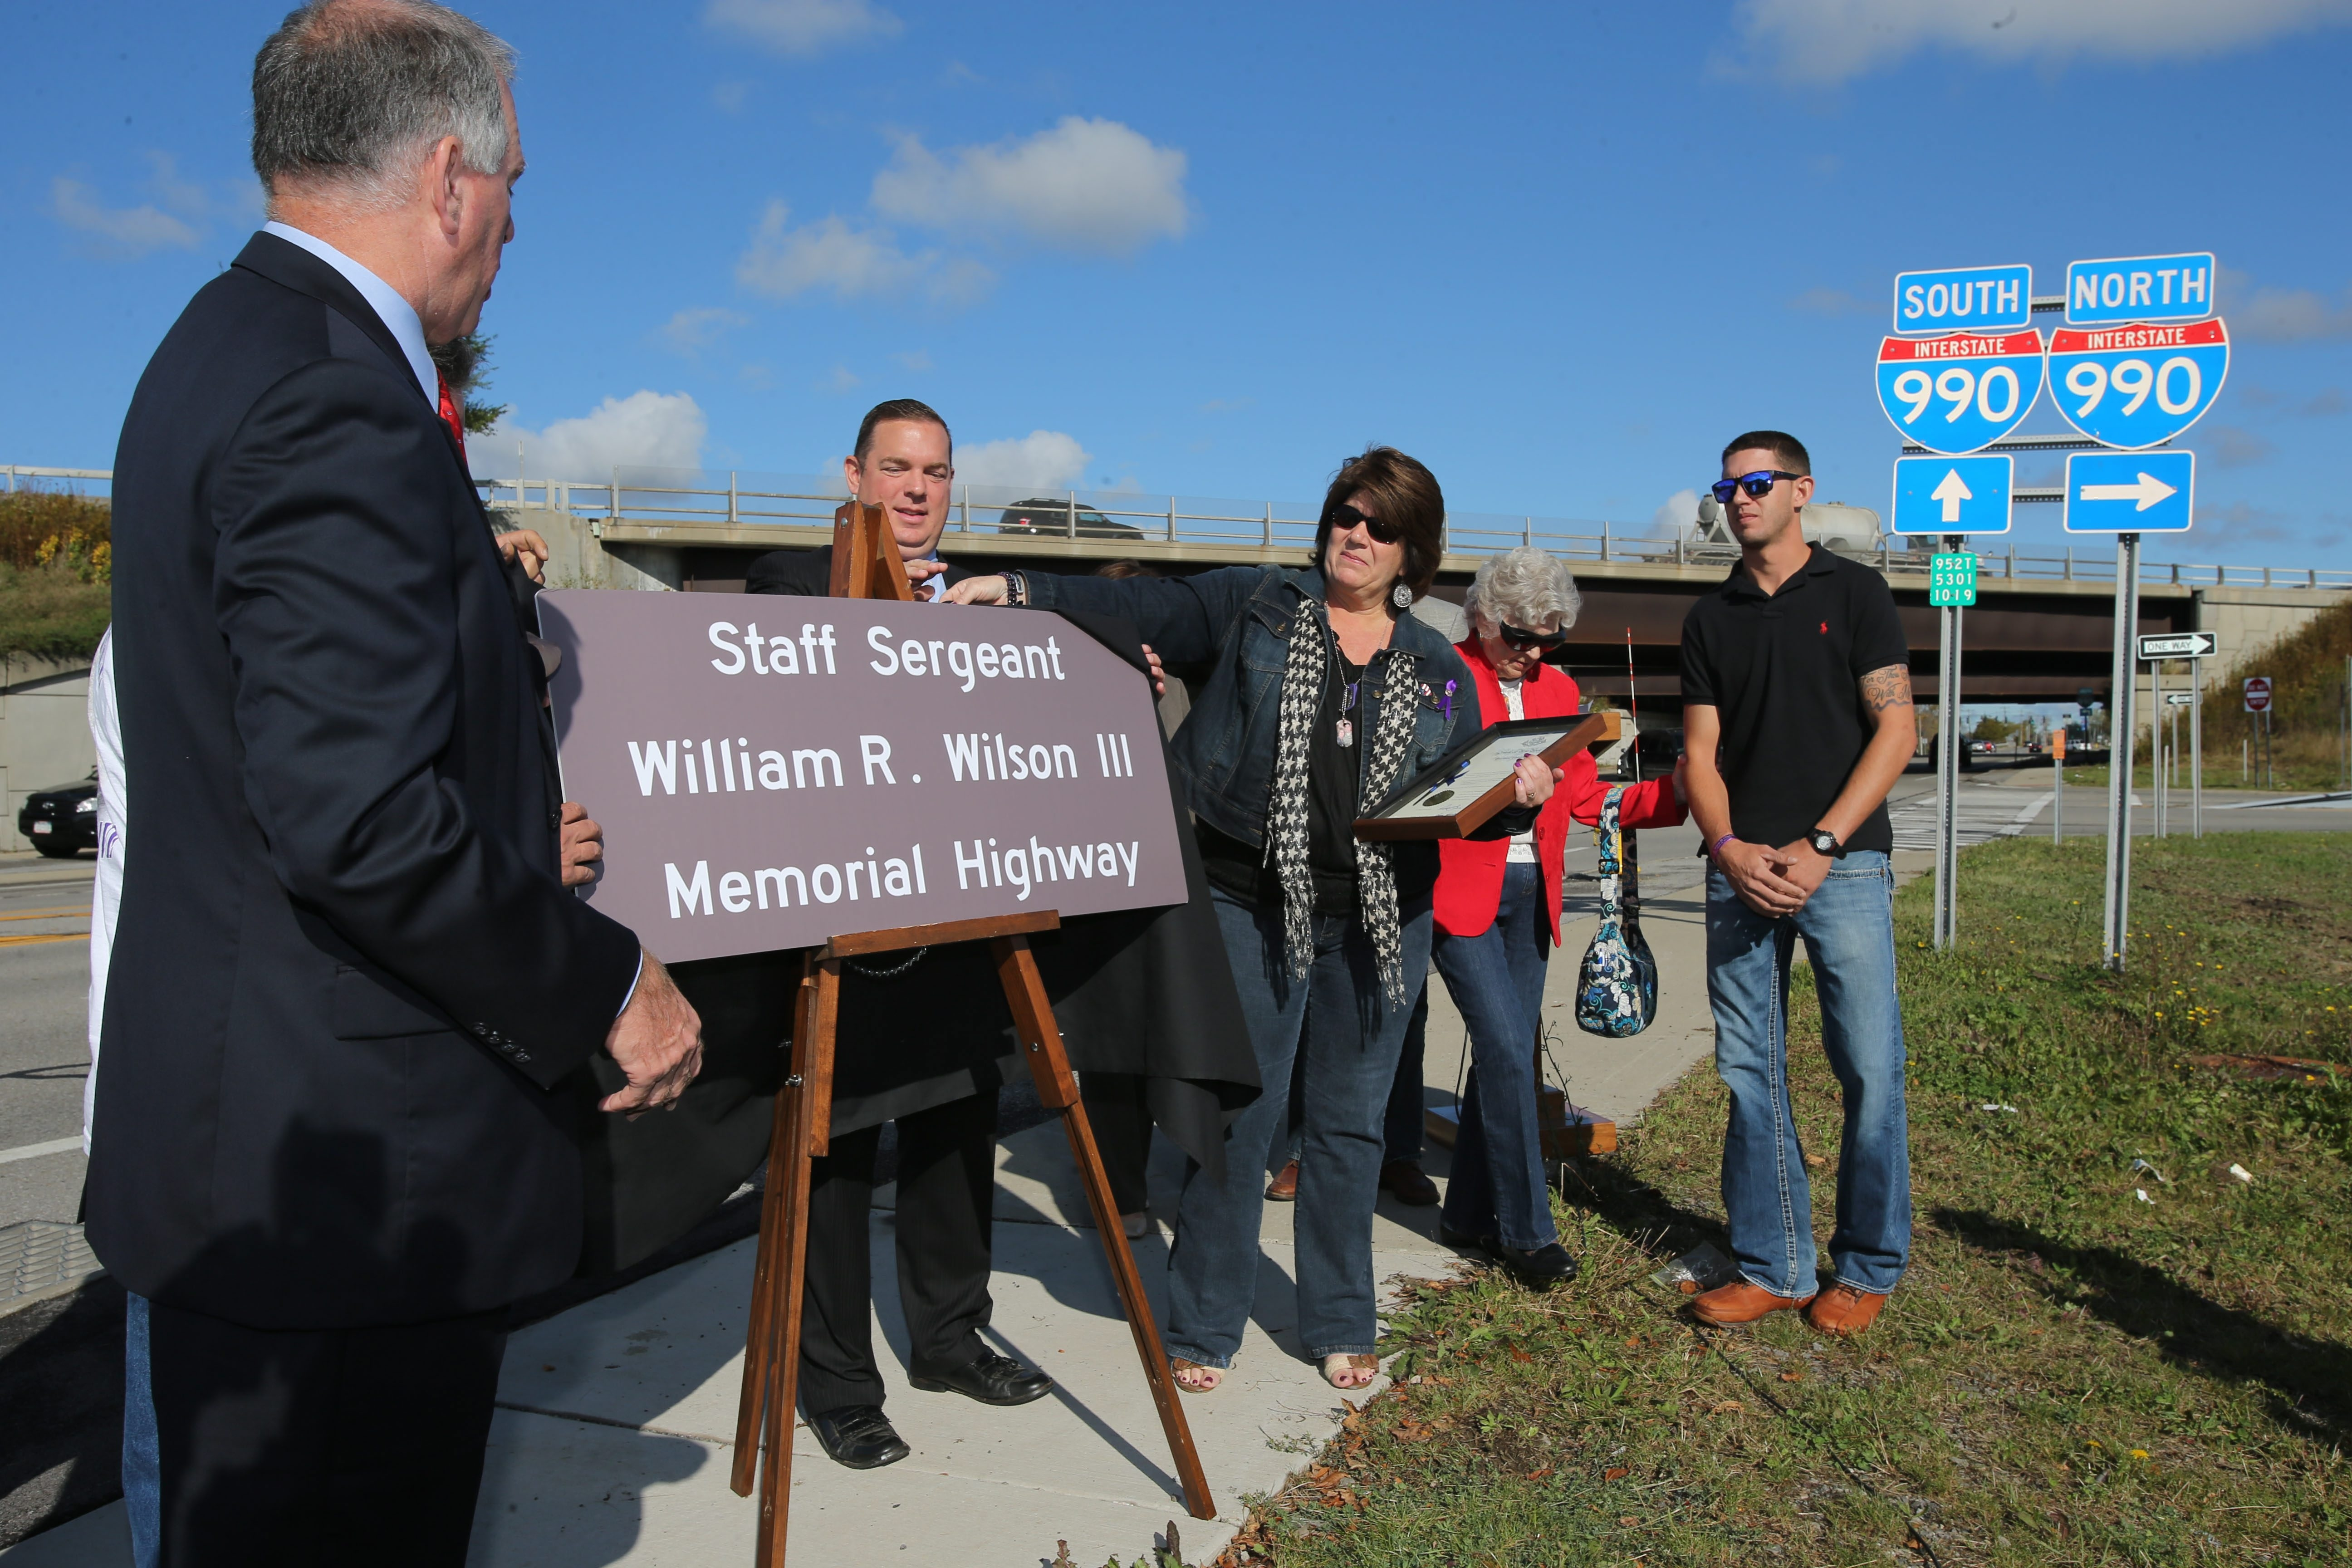 State Sen. Michael H. Ranzenhofer, left, and Kimberly Wilson unveil a sign during a ceremony to rename most of the Lockport Expressway as Staff Sgt. William R. Wilson III Memorial Highway, in honor of her late son Monday. Her son Jeremy Wilson, right, looks on.